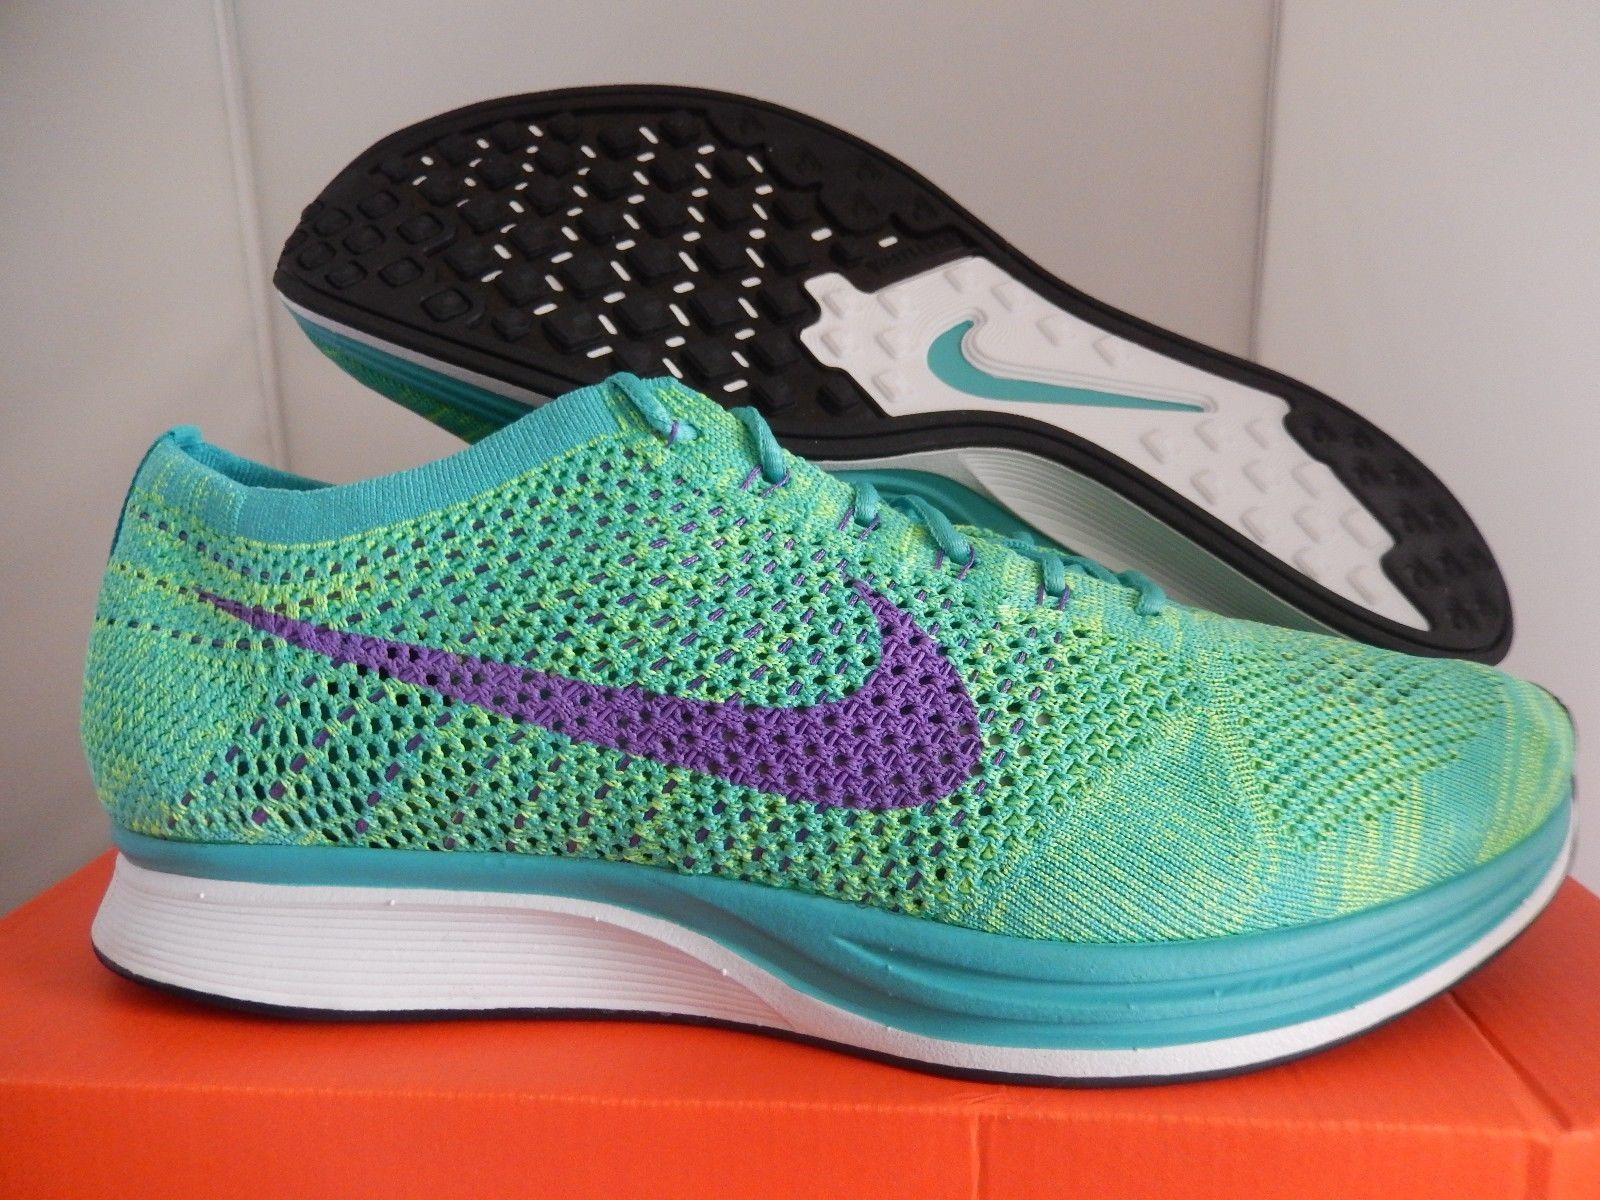 827e1ae880aca ... discount nike flyknit racer blue lagoon nike flyknit racer turquoise  hyper grape volt 526628 301 4cead